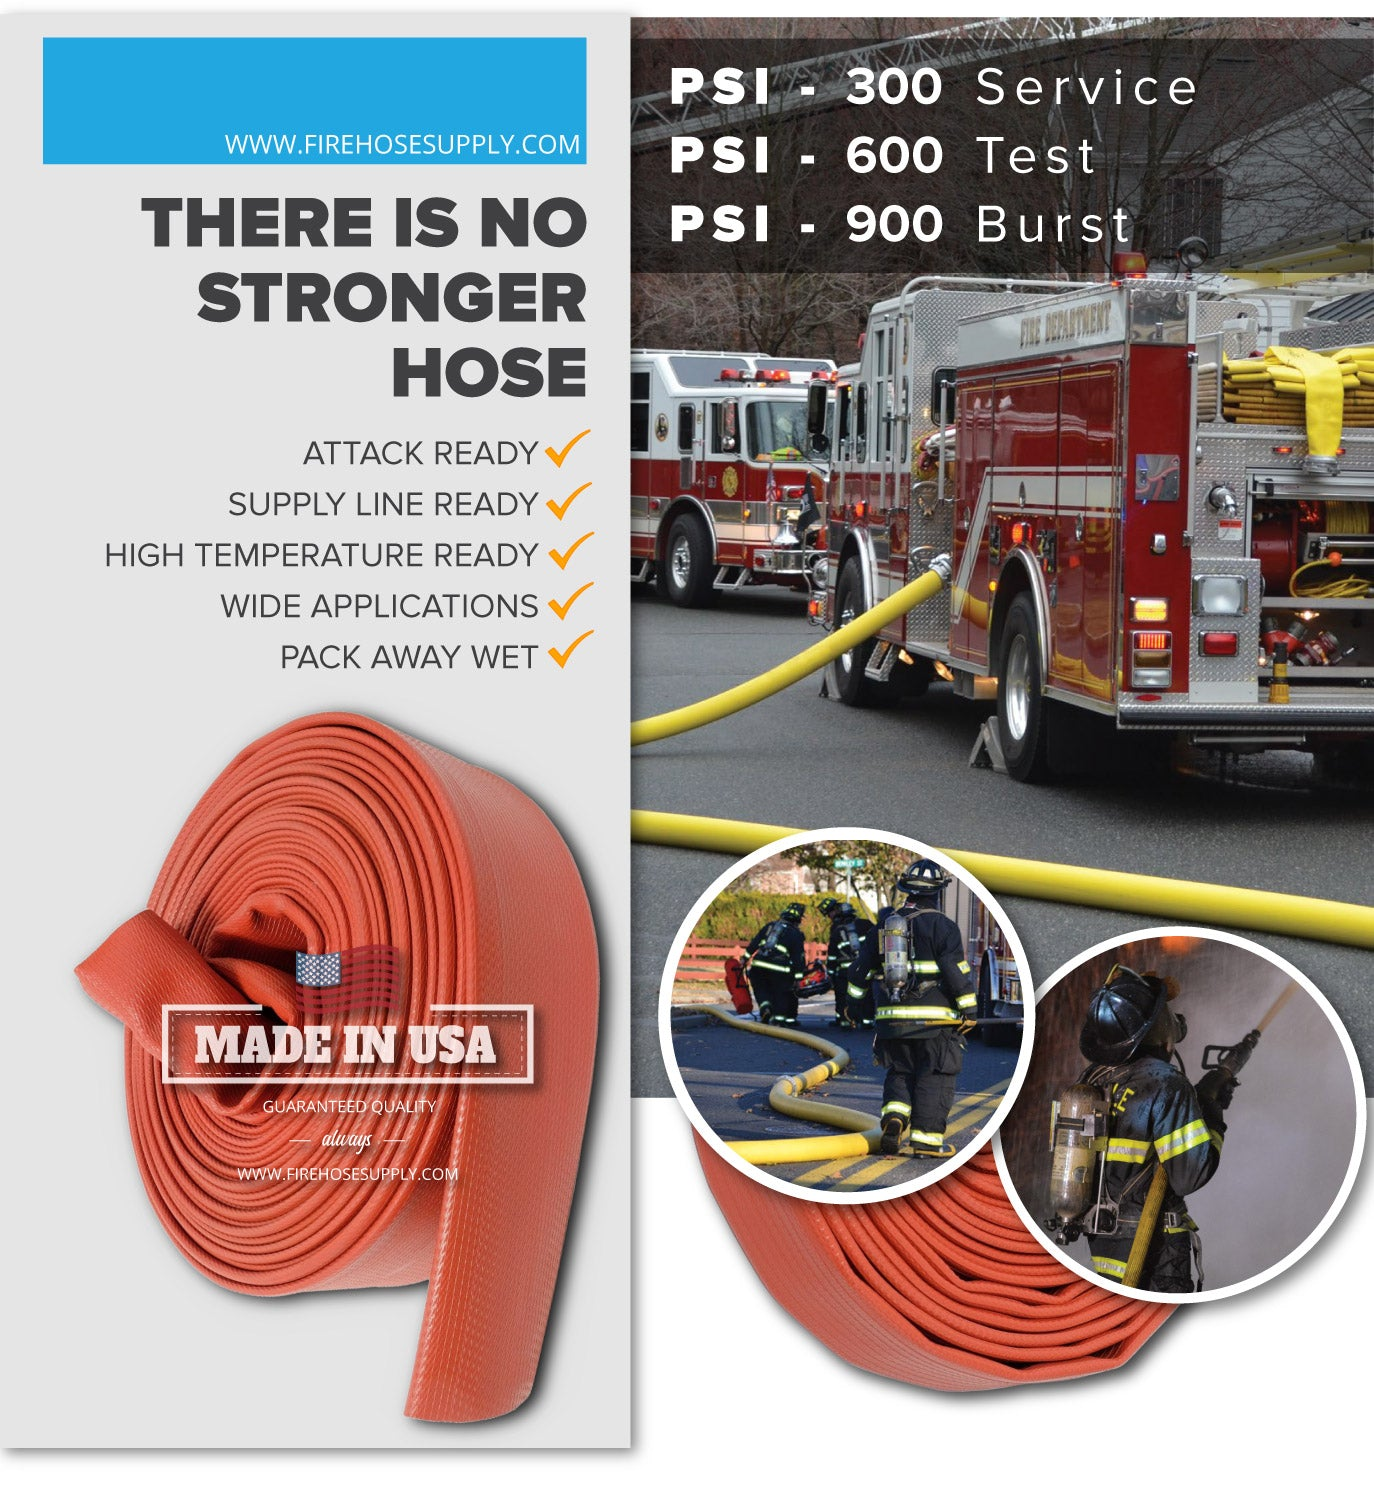 2.5 Inch Rubber Fire Hose Material Only Supply And Attack Ready Firefighter Red 600 PSI Test